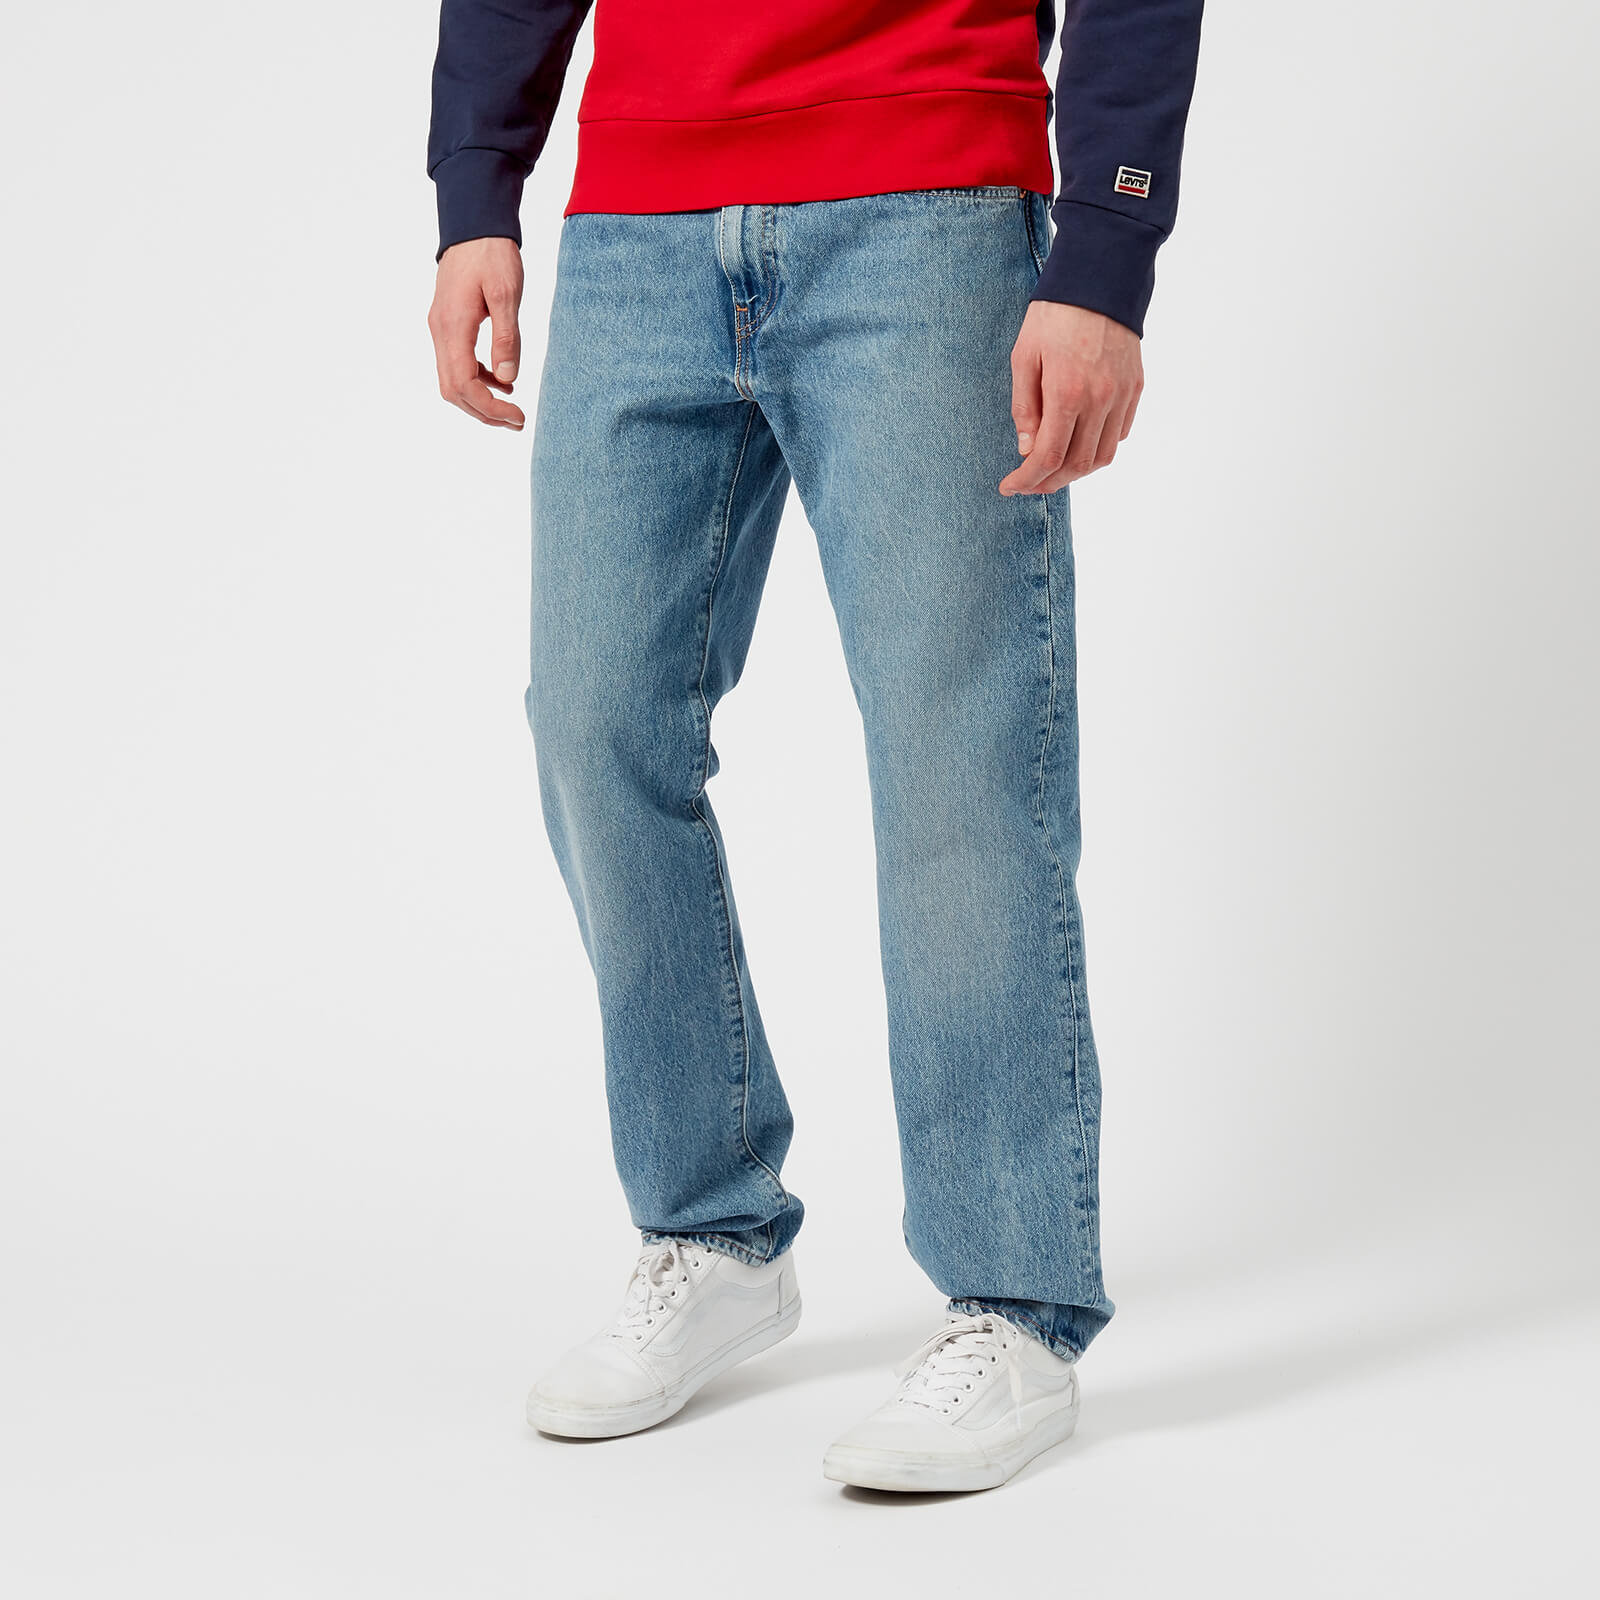 826e472353a Levi's Men's 502 Regular Tapered Jeans - Swaggu Warp - Free UK Delivery  over £50